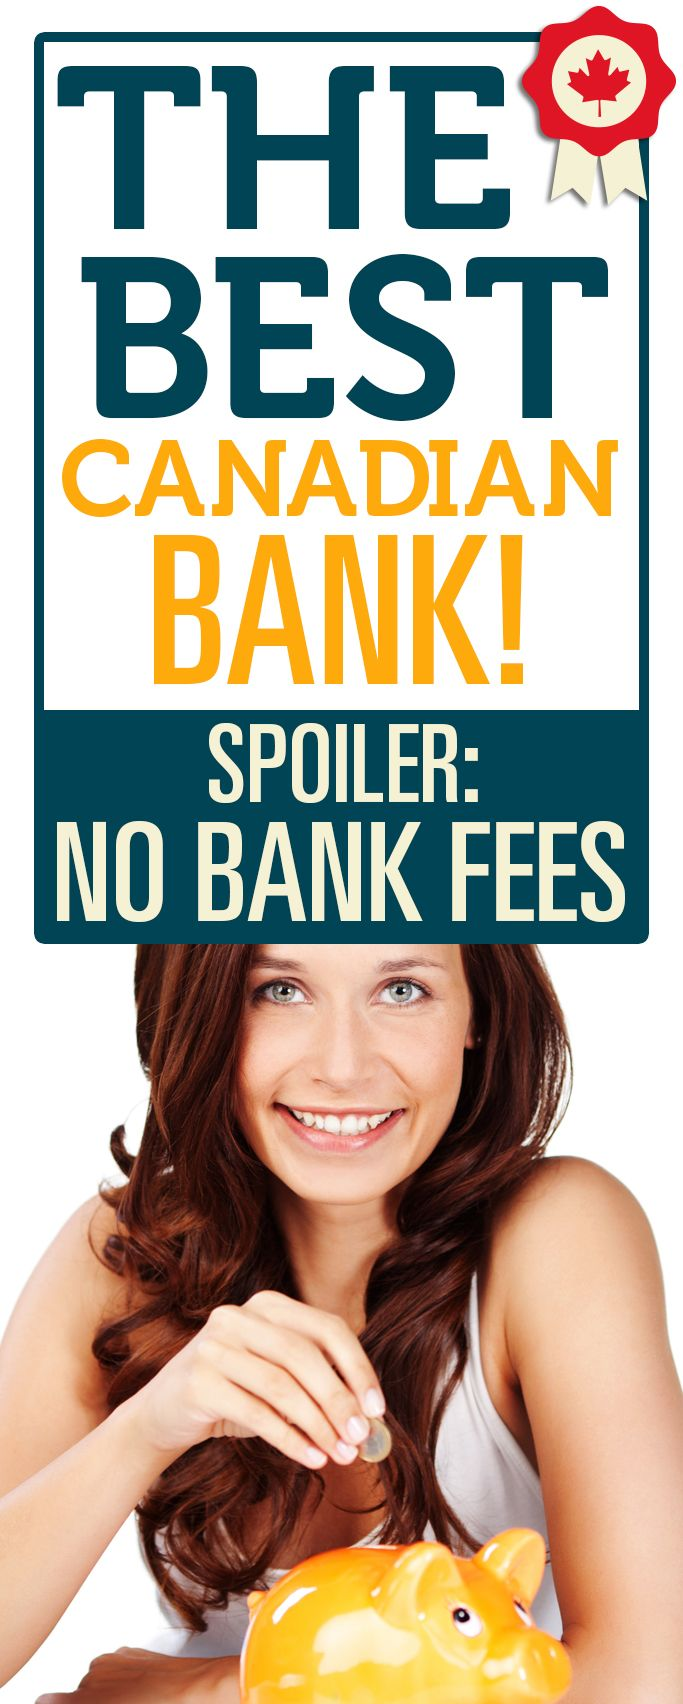 Account Suspended Bank fees, Savings bank, Canadian